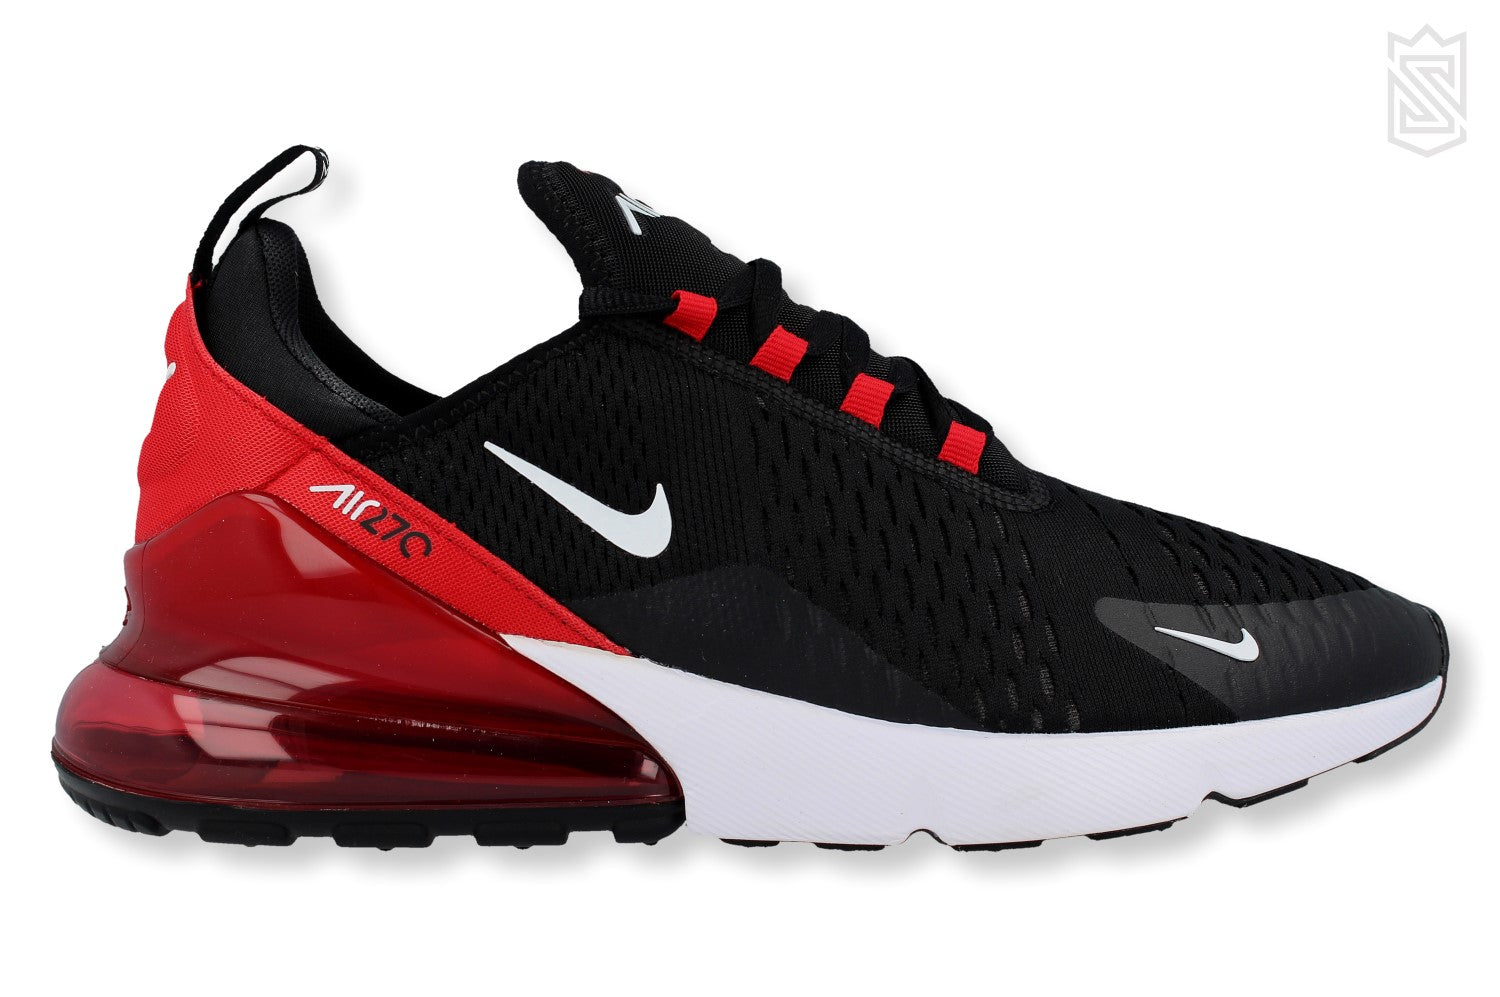 hot new products performance sportswear official images Air Max 270